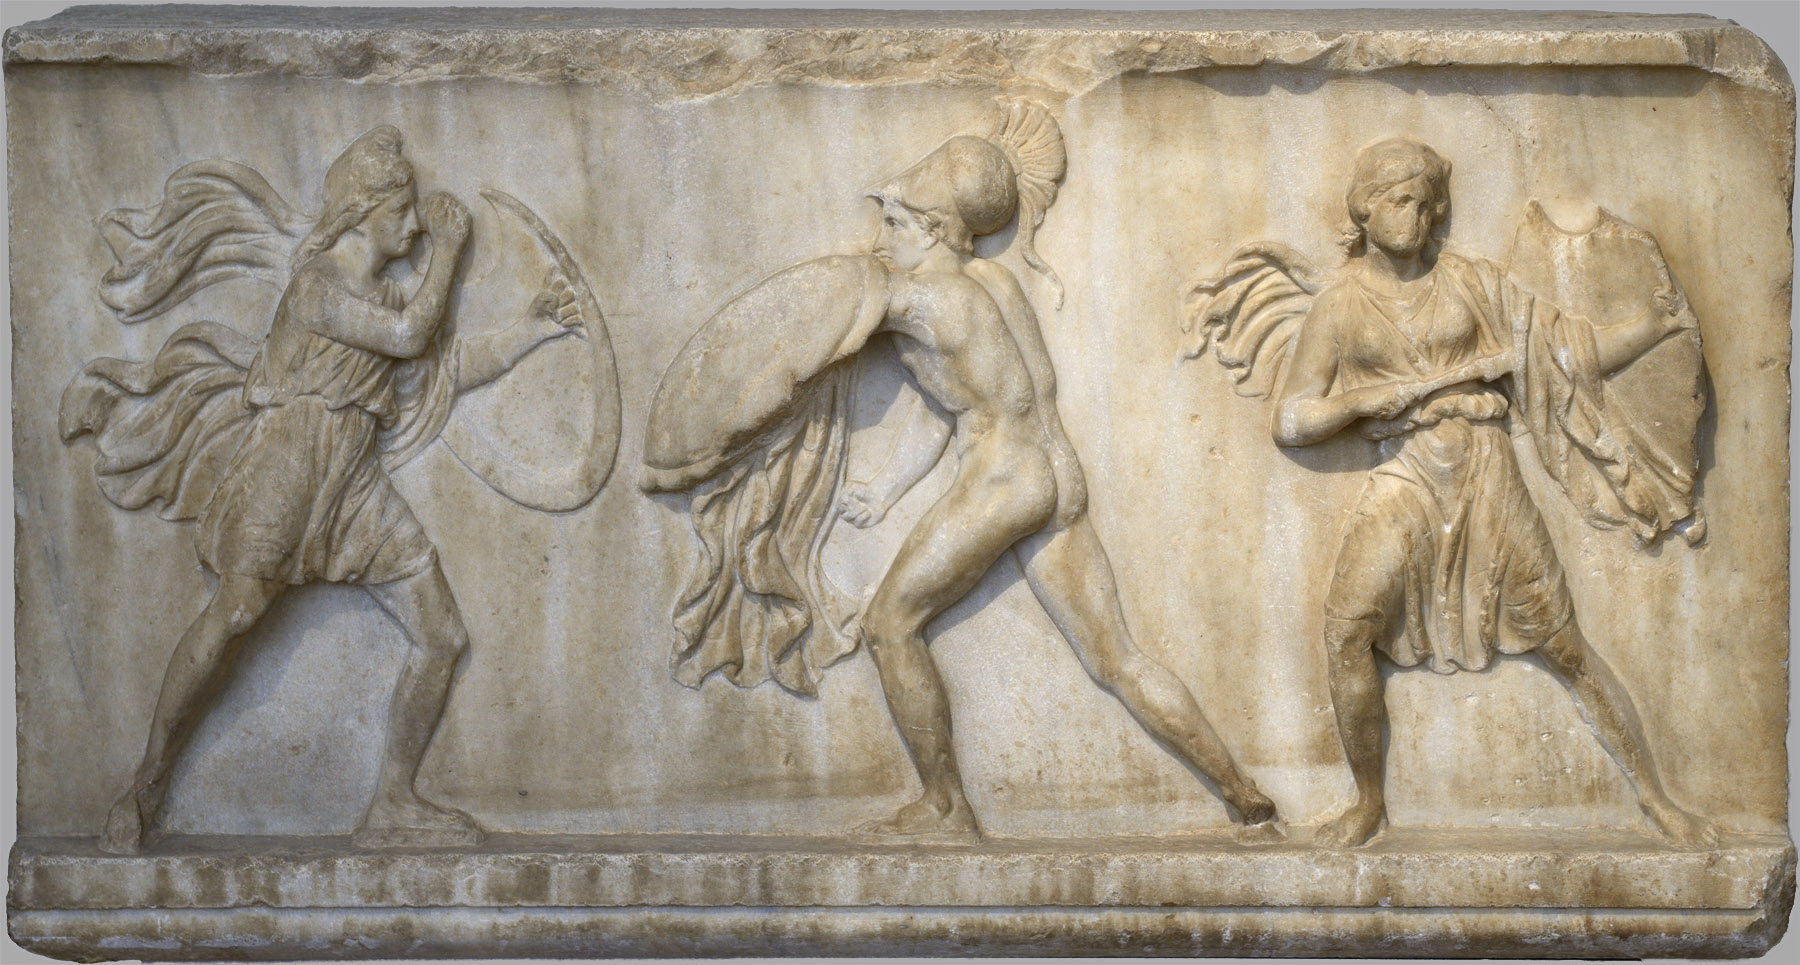 Greek fighting Amazons. Pentelic marble. Relief slab from a friese depicting Amazonomachy. Mid-4th cent. BCE. Inv. No. 3614. Athens, National Archaeological Museum